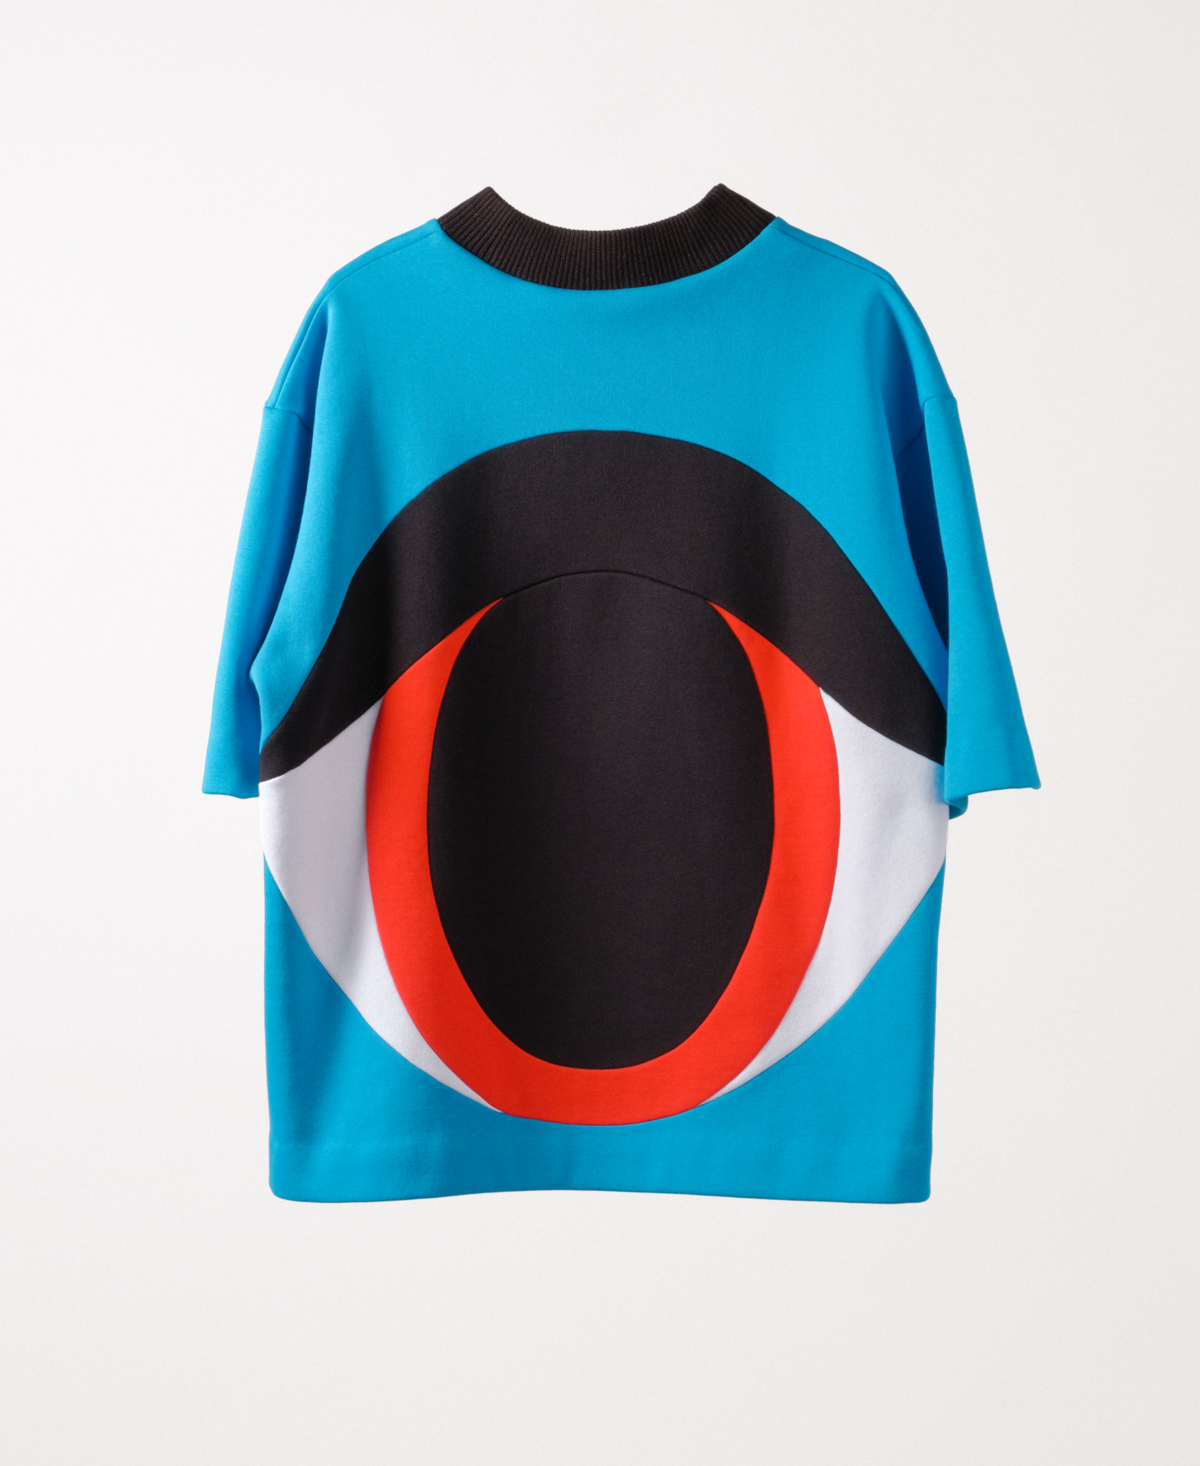 The Look Blue T-shirt